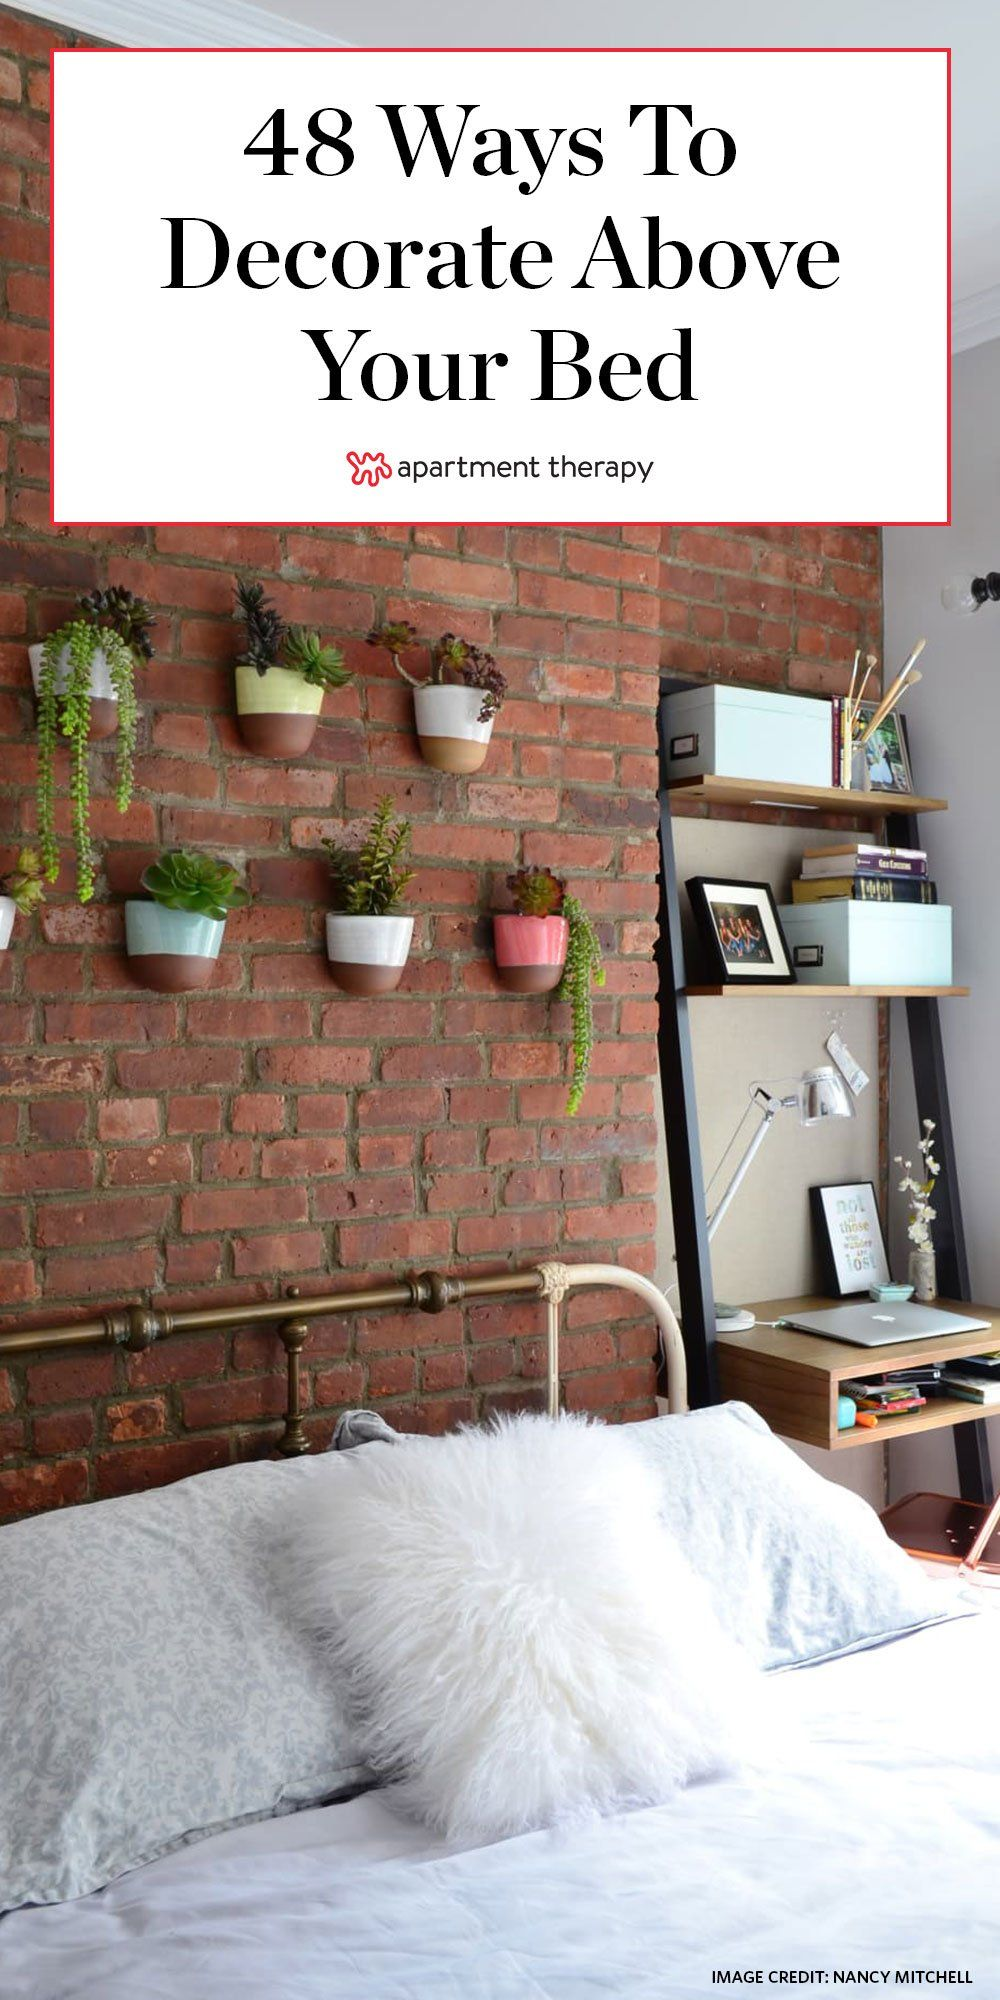 48 Decorating Ideas For That Wall Space Above Your Bed Above Bed Decor Bedroom Wall Decor Above Bed Wall Decor Bedroom